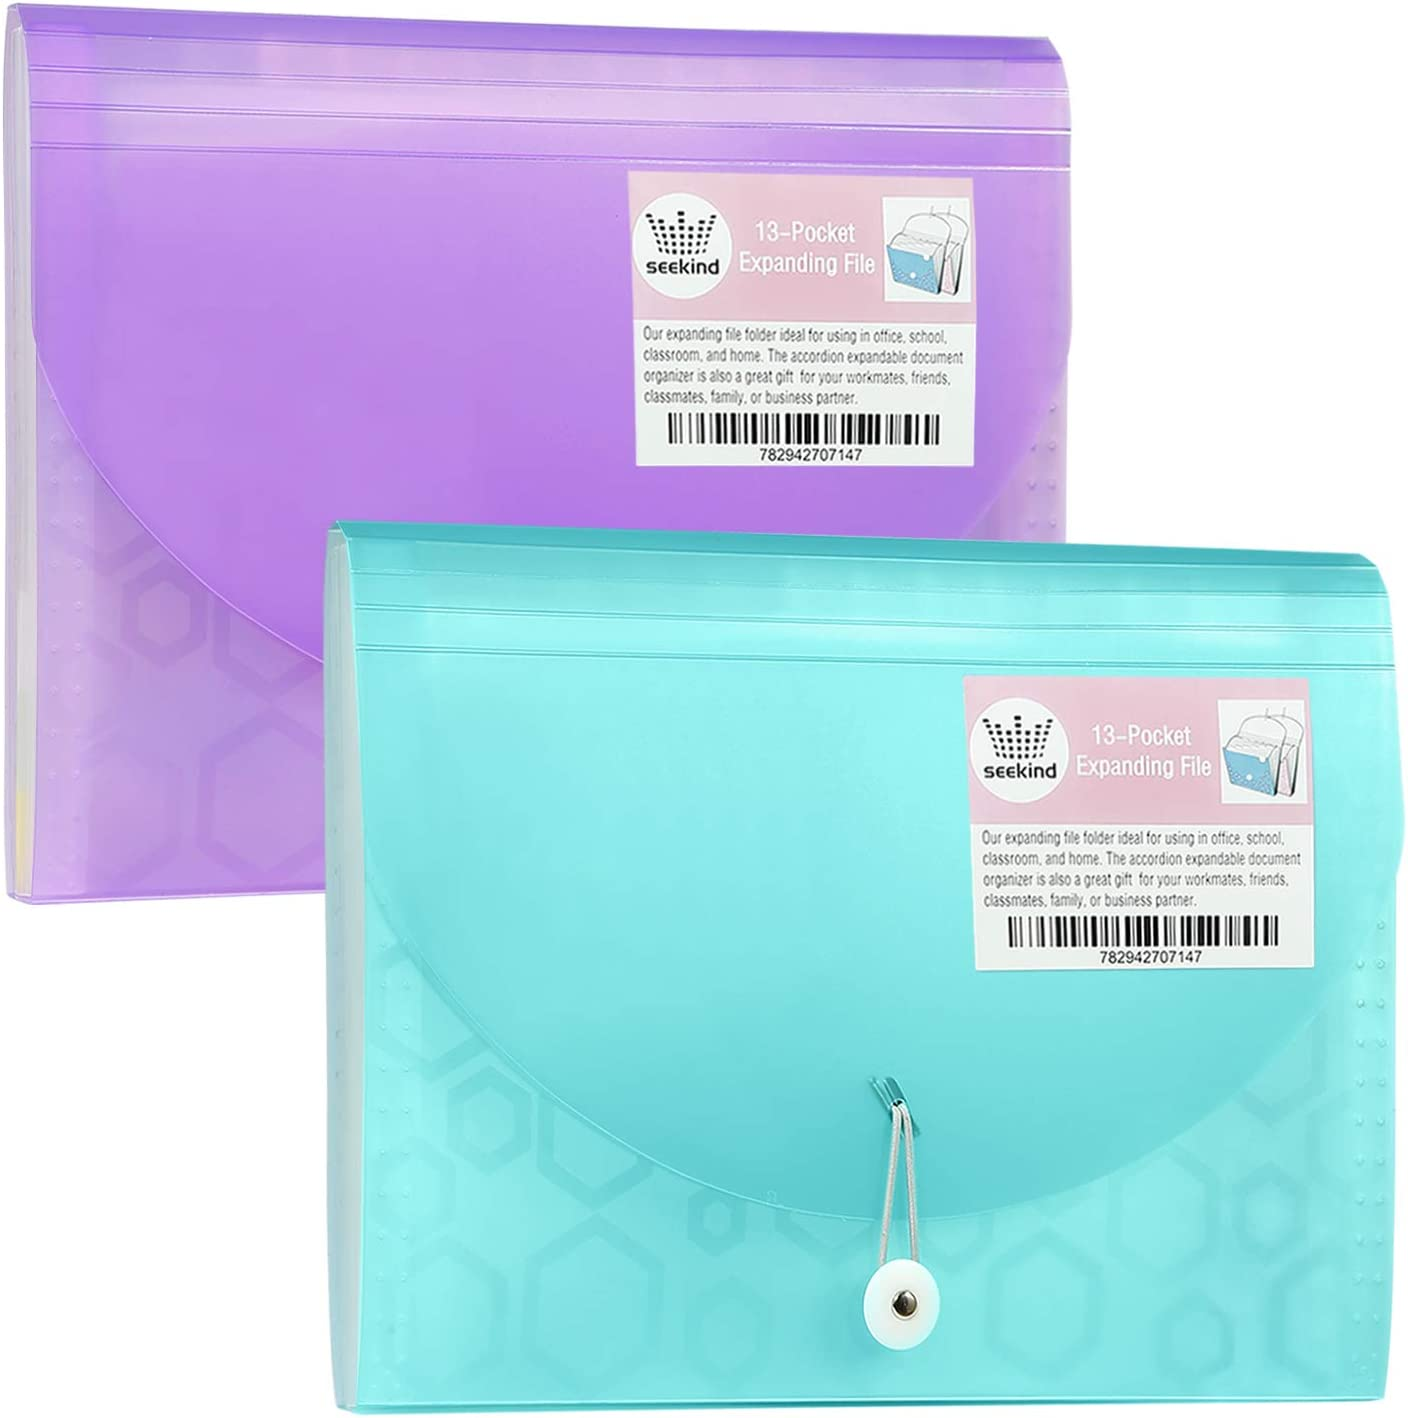 SEEKIND Expanding File Folders 2 Pack, Receipt Organizer Folder Accordion Folder Document with 13 Pocket for Office,Cards,Tickets-Water Resistant